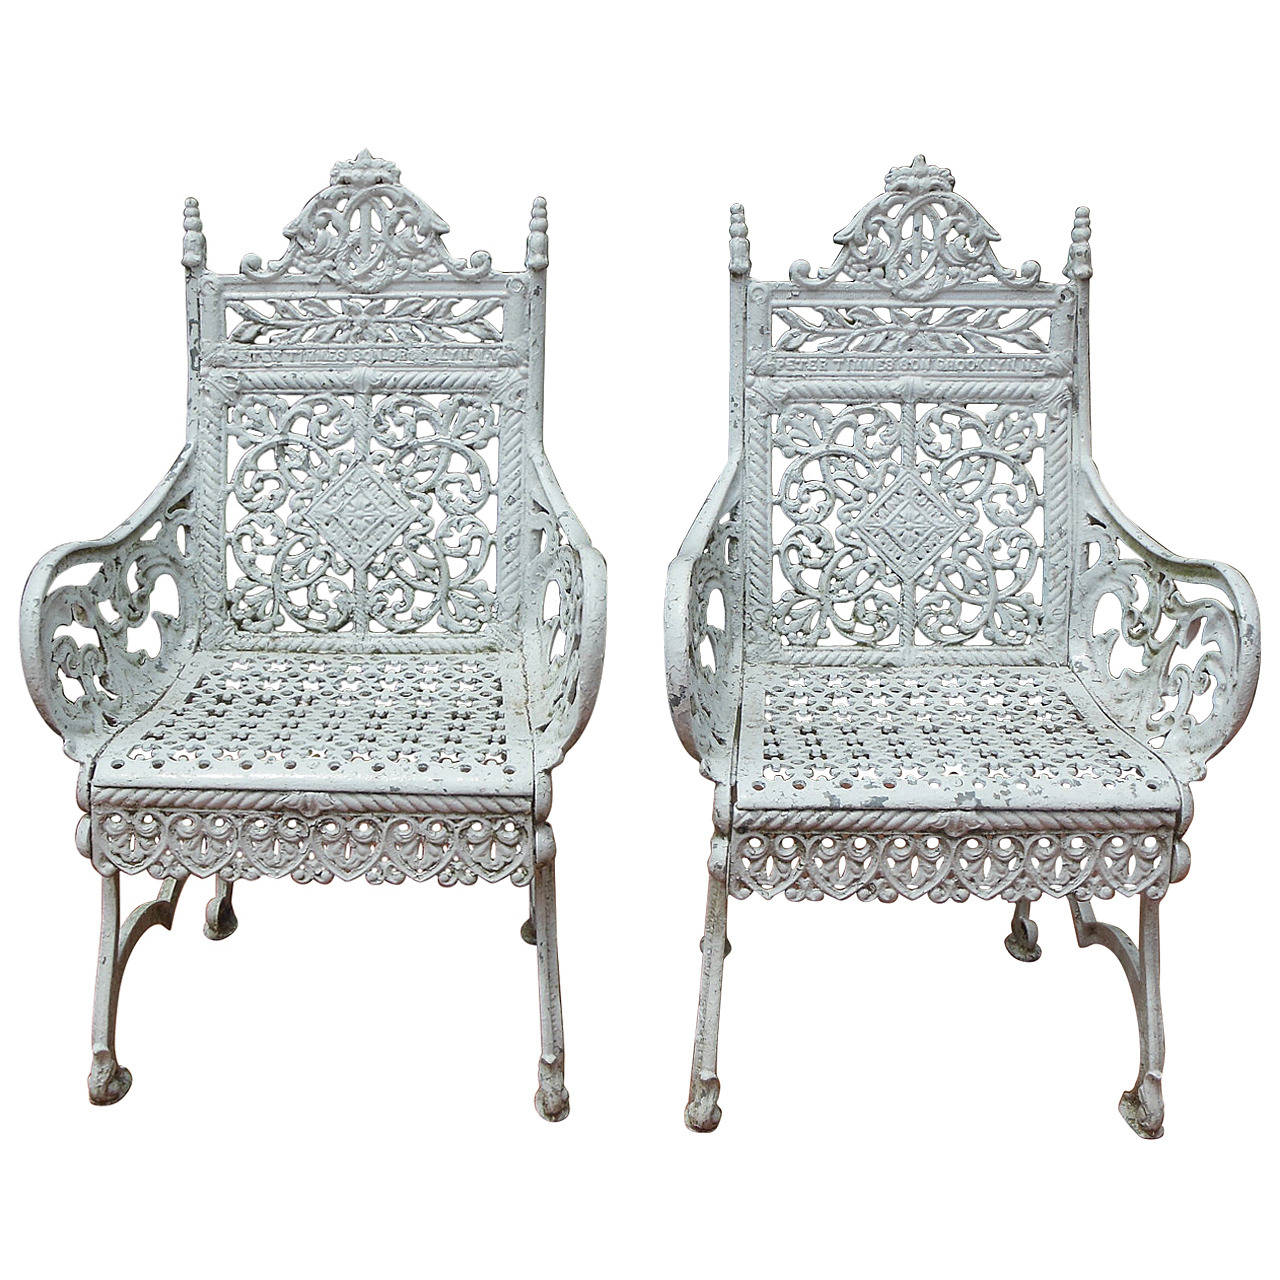 Pair Of 19th Century Cast Iron Chairs By Peter Timmes Ny: cast iron garden furniture